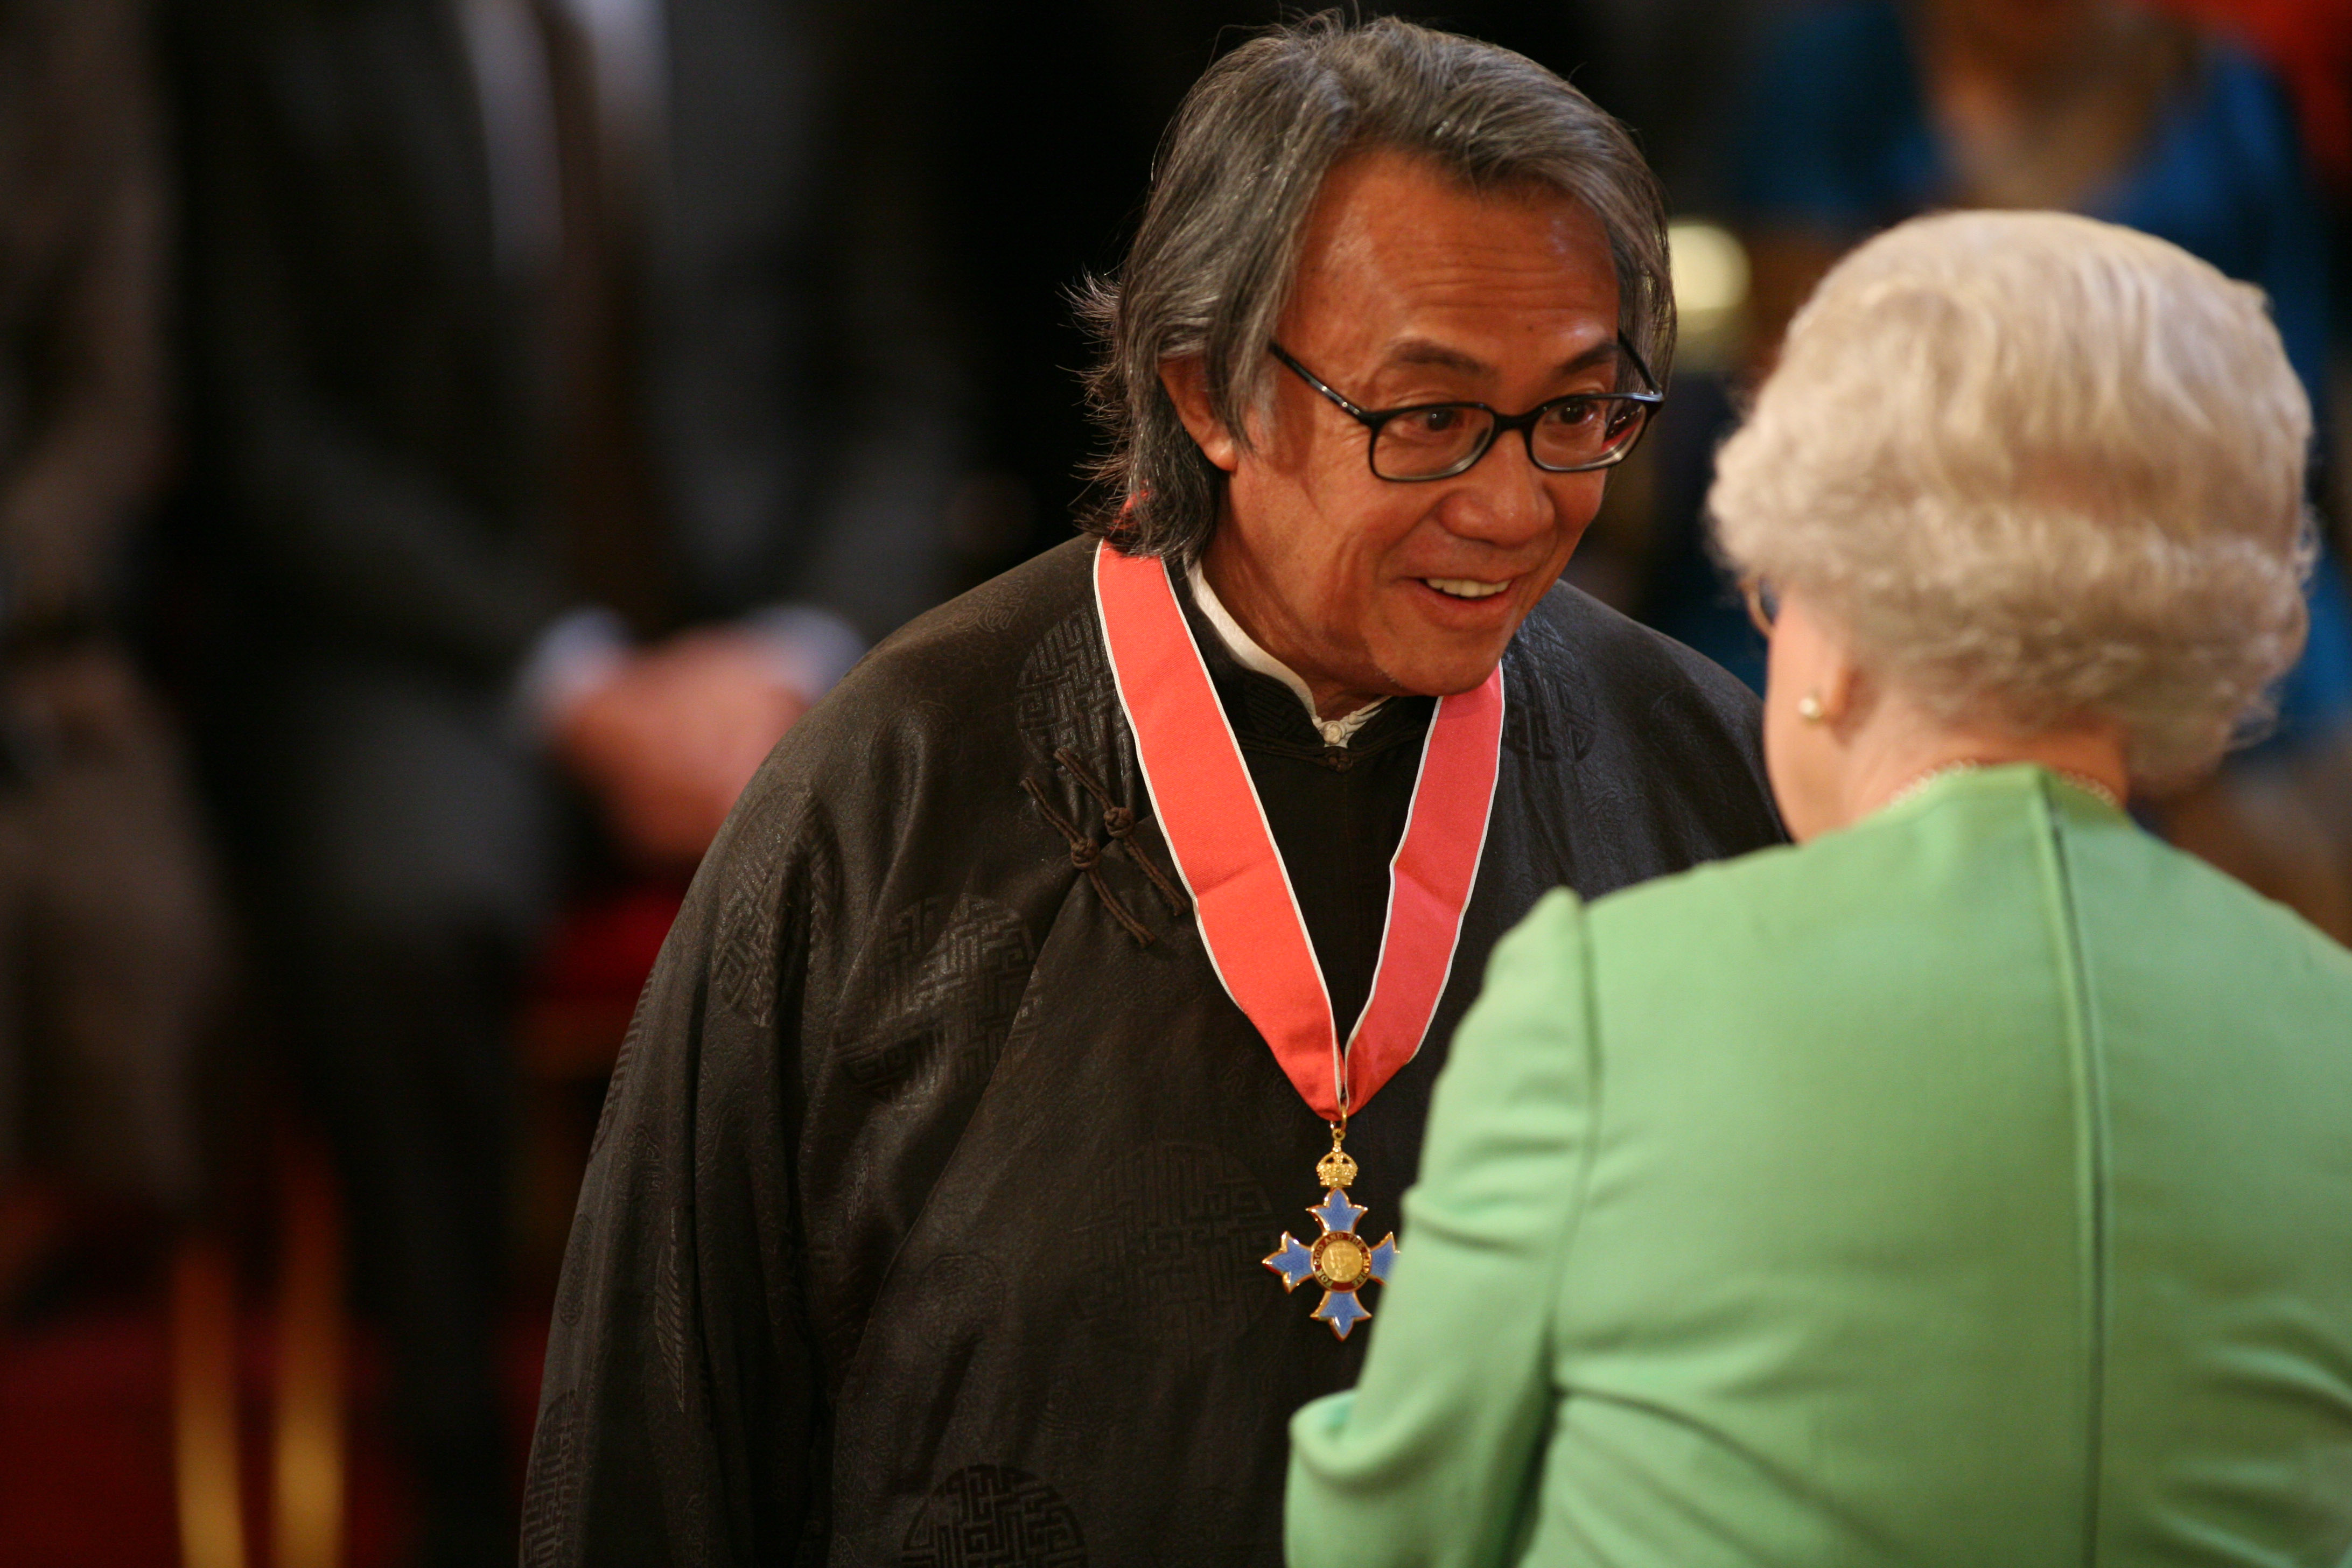 Sir David Tang is knighted by the Queen at Buckingham Palace in February 2008.